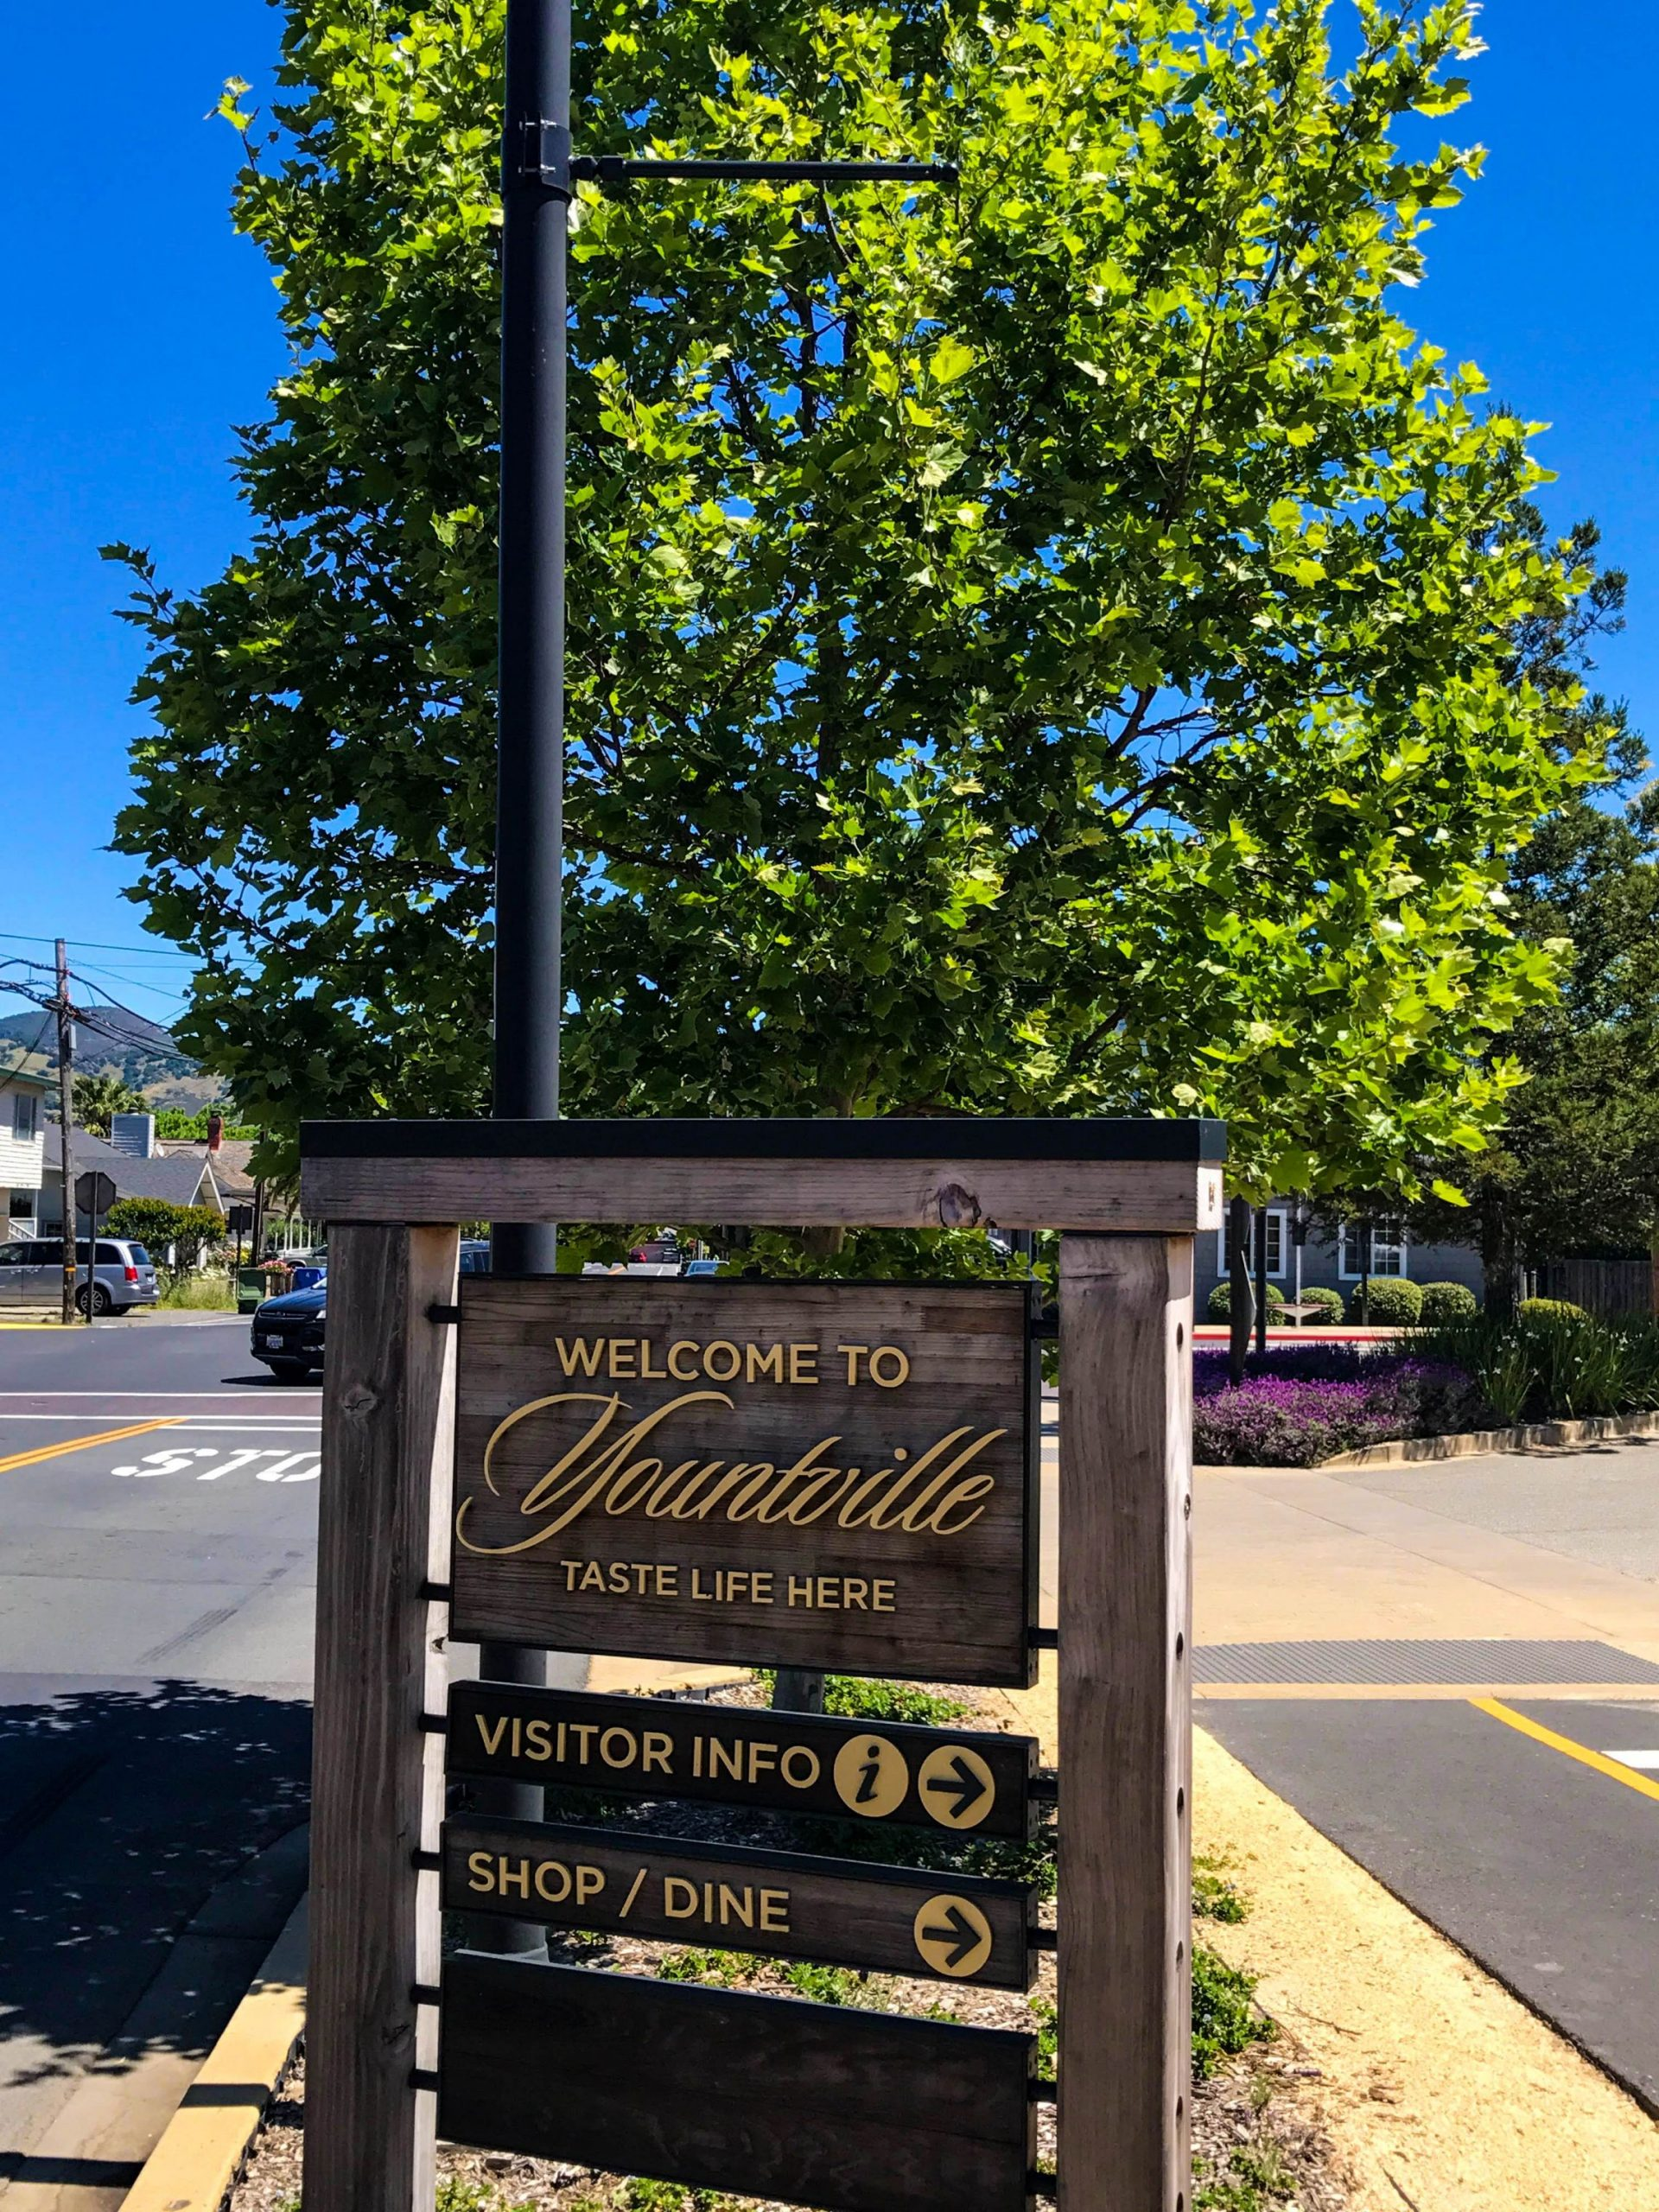 Visit Yountville for great shopping, food and wine!